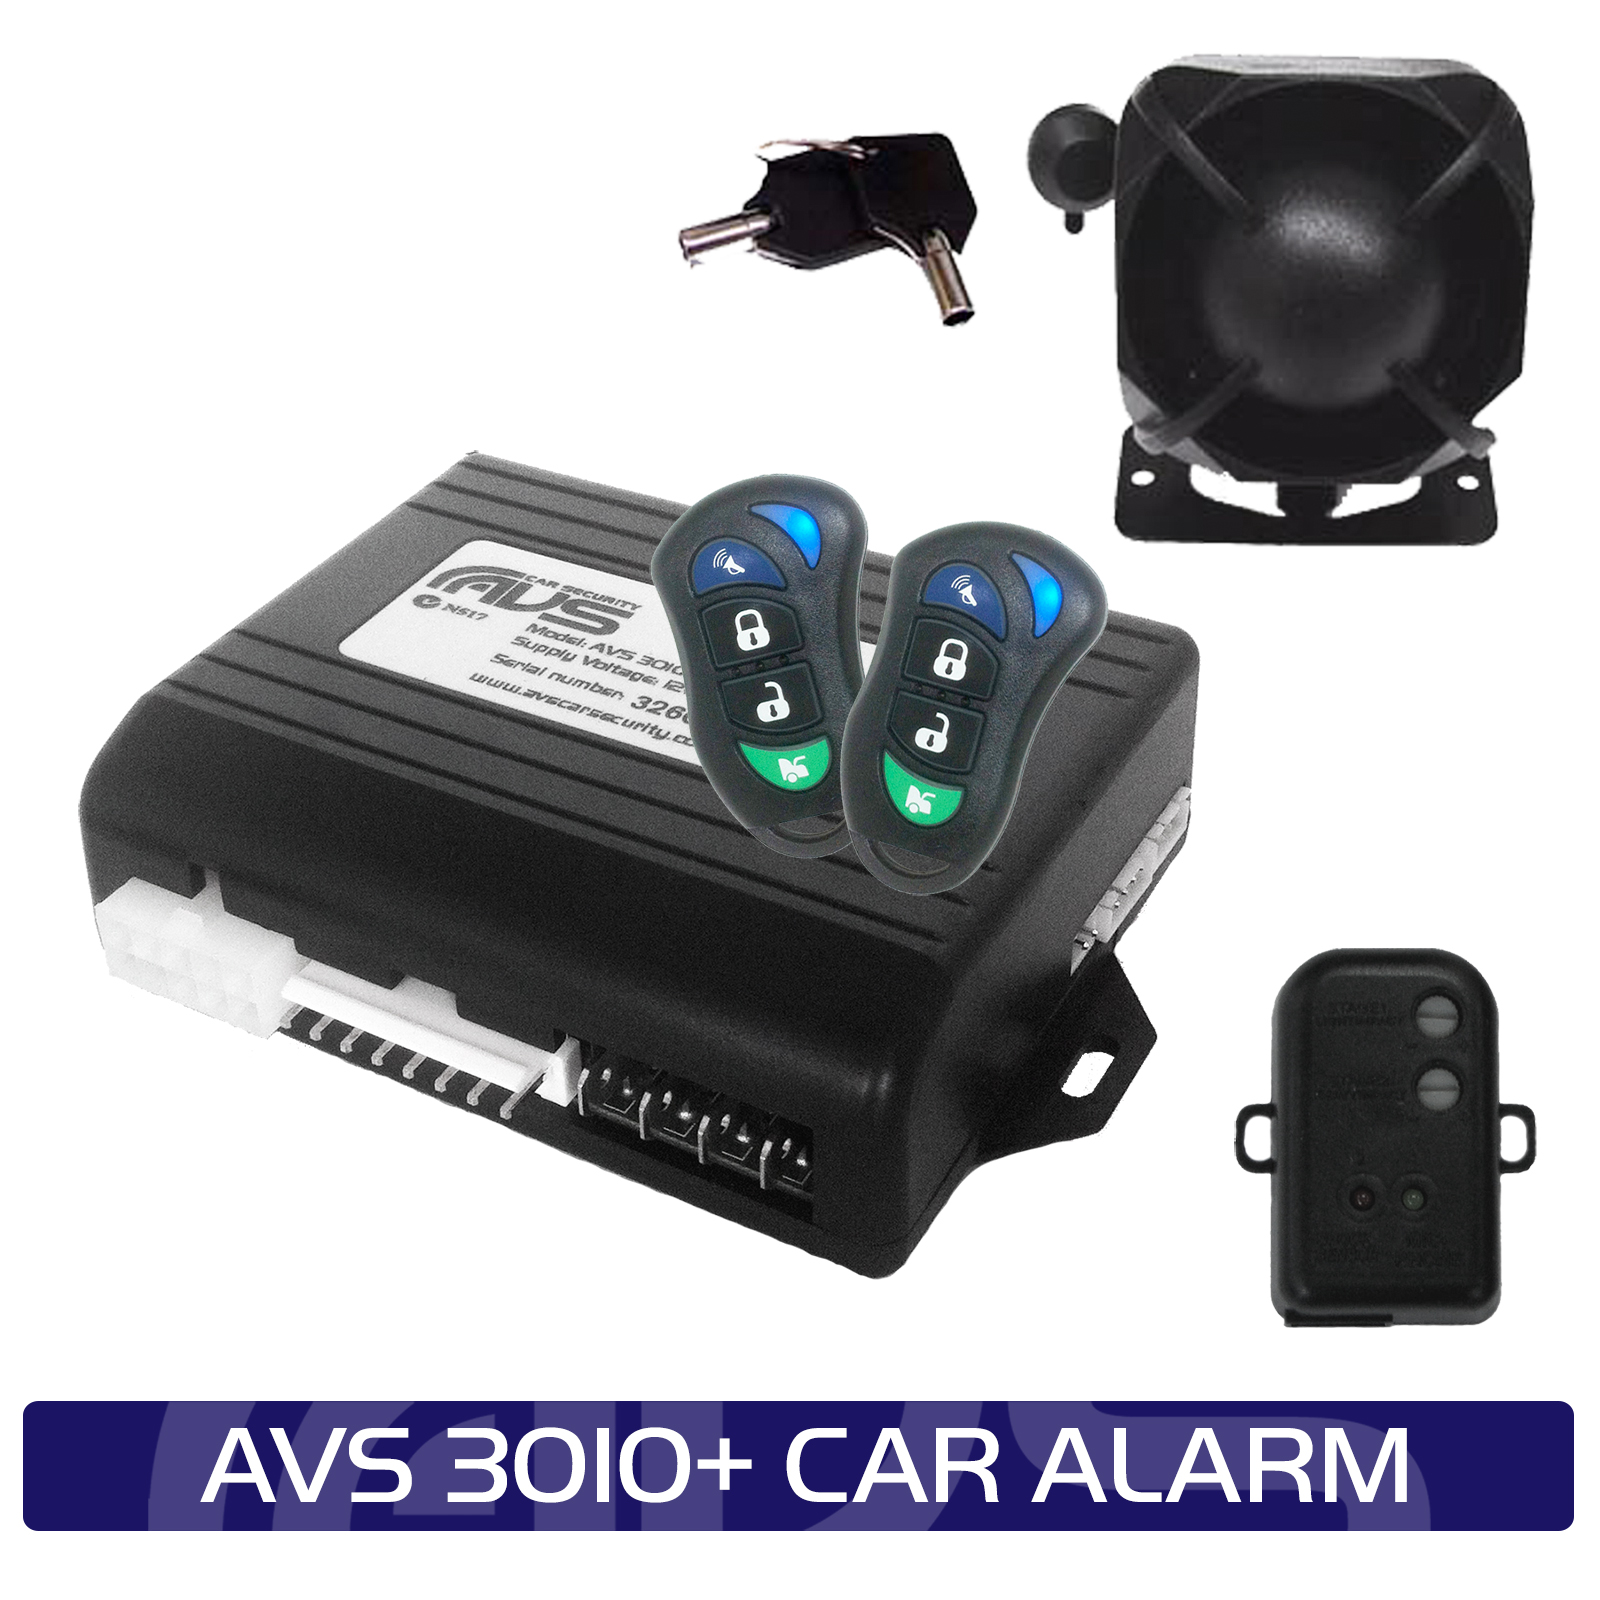 hight resolution of avs 3010 car alarm avs car security 0800 438 862 avs 3010 car alarm wiring diagram